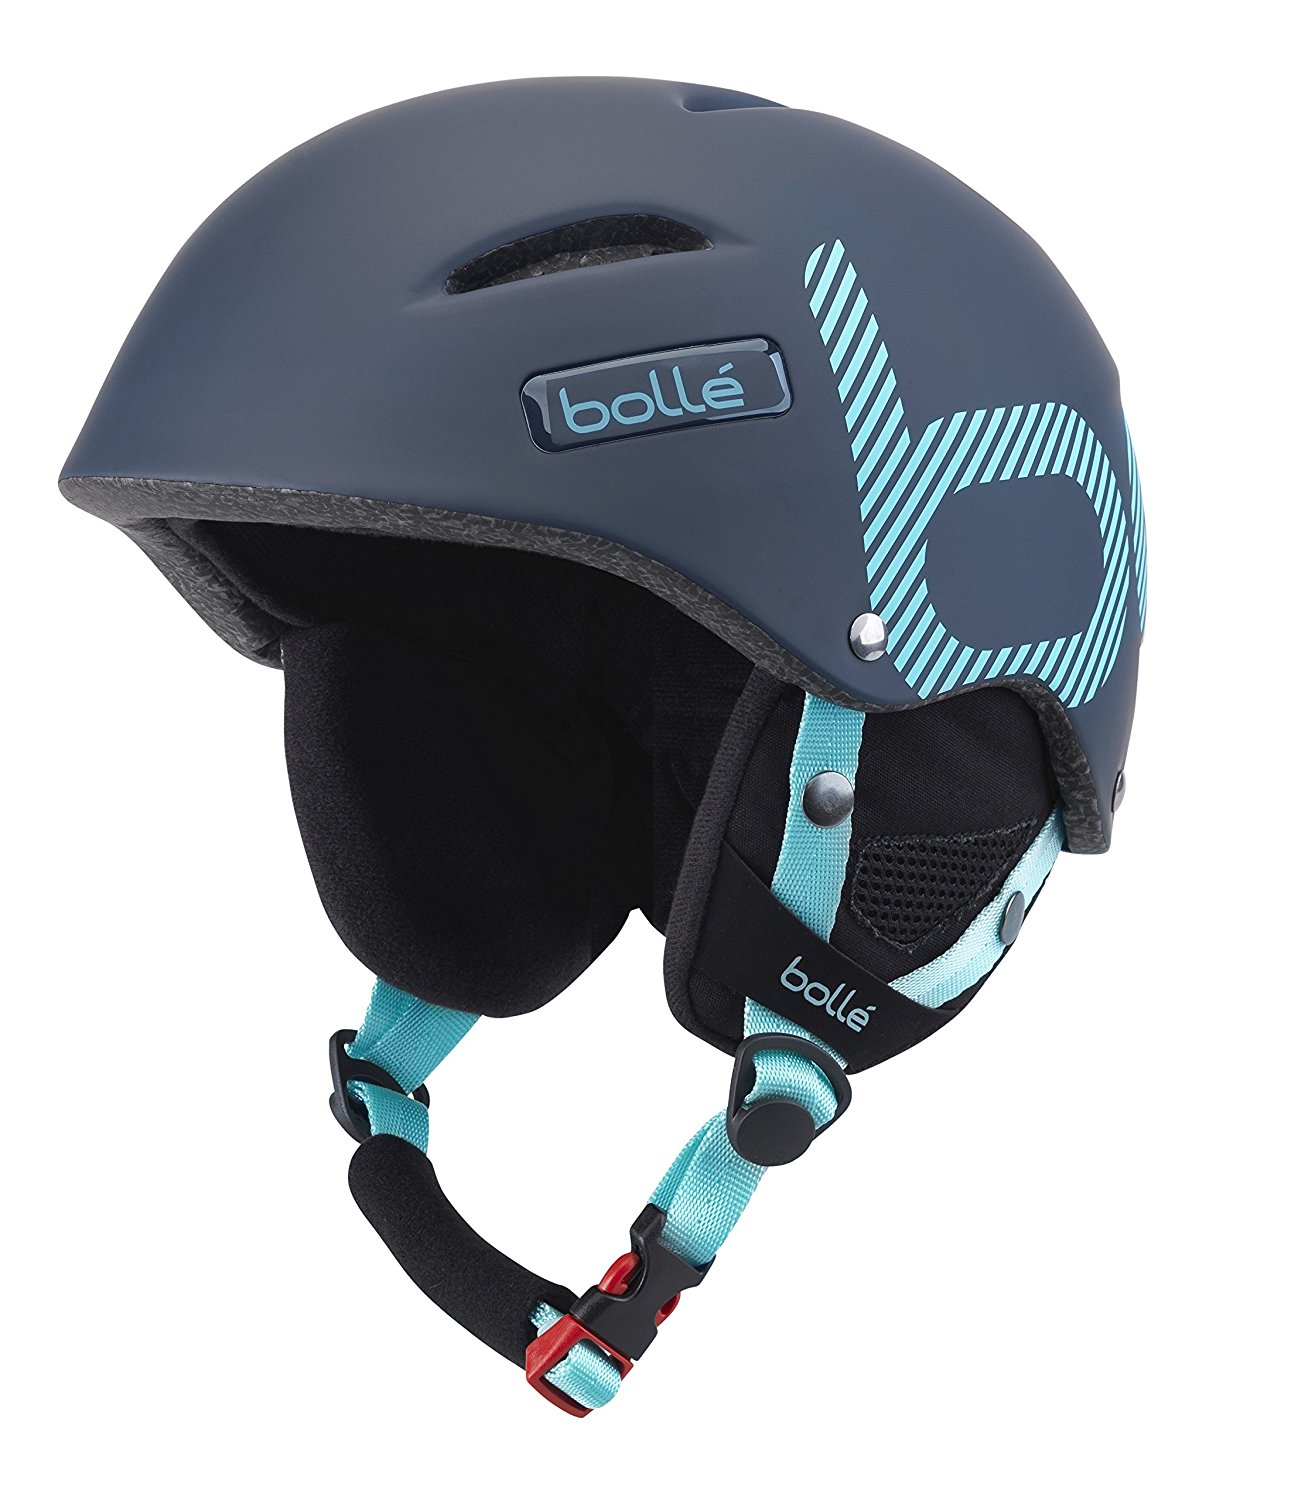 *Bolle Winter B-Yond Soft Blue & Lime 61-63cm 31452 Ski Helmet Click-to-Fit by Supplier Generic